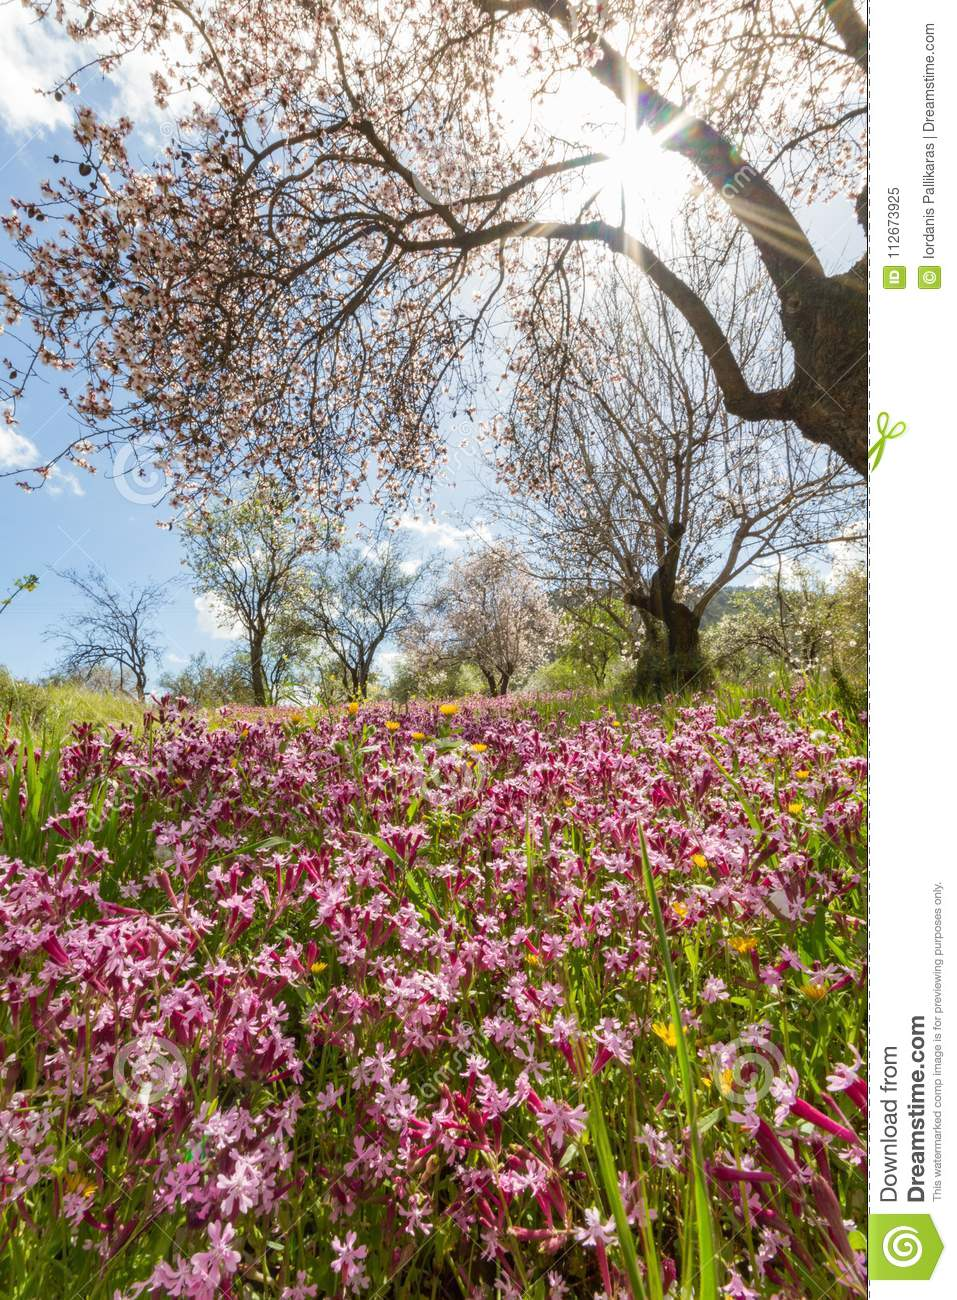 Blossoming Almond Tree Branches And Purple Flowers In A Field Du